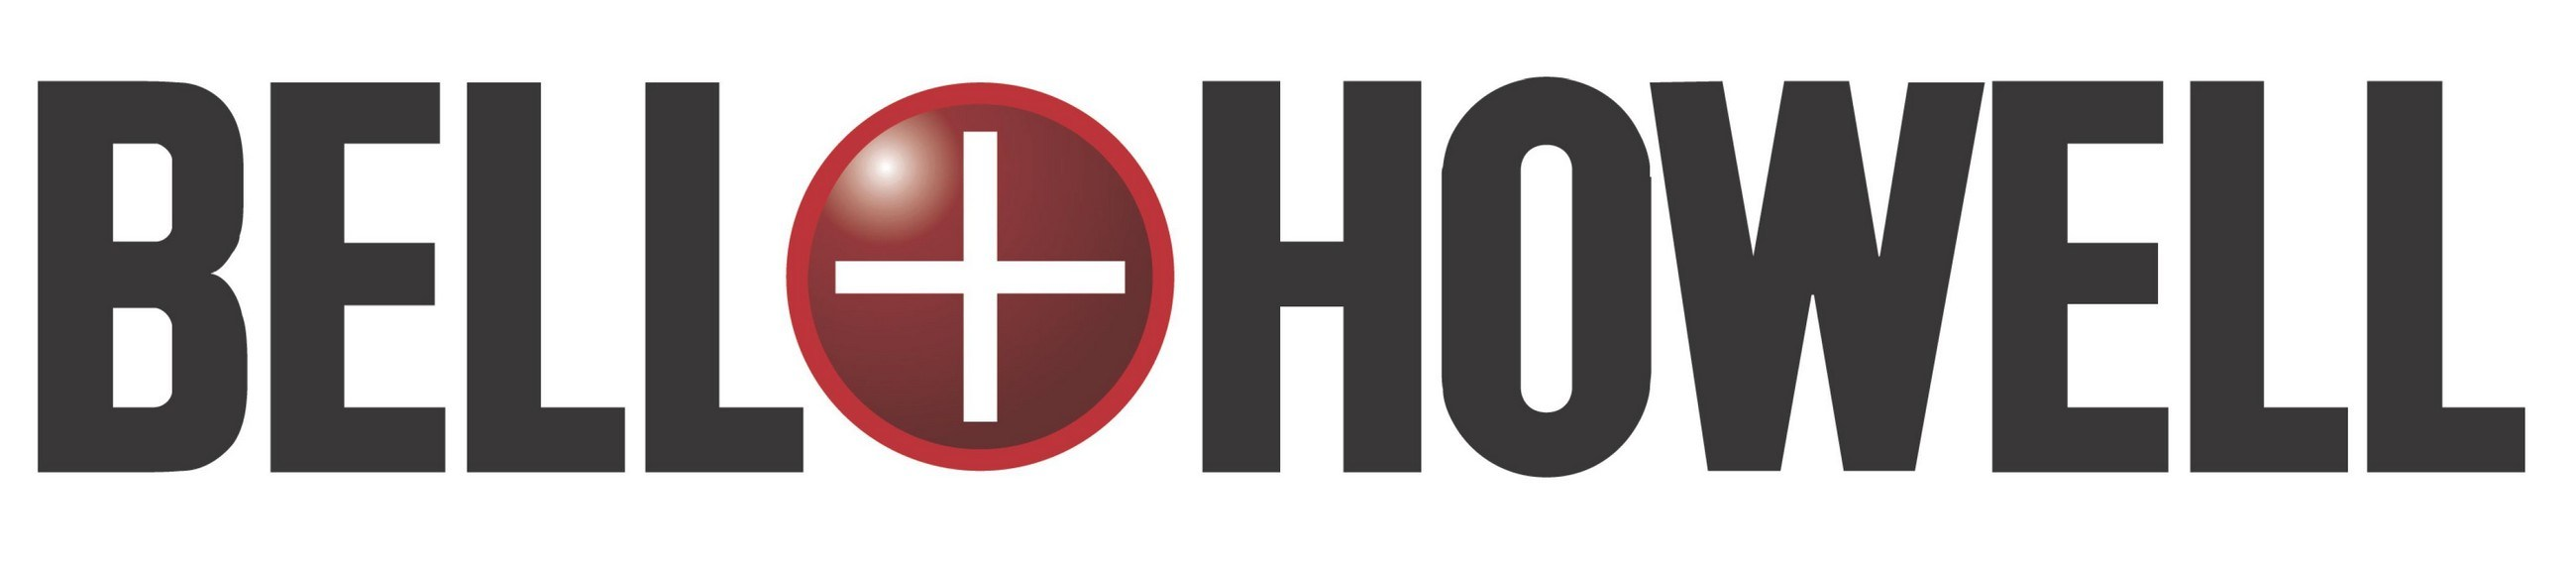 bell and howell logo